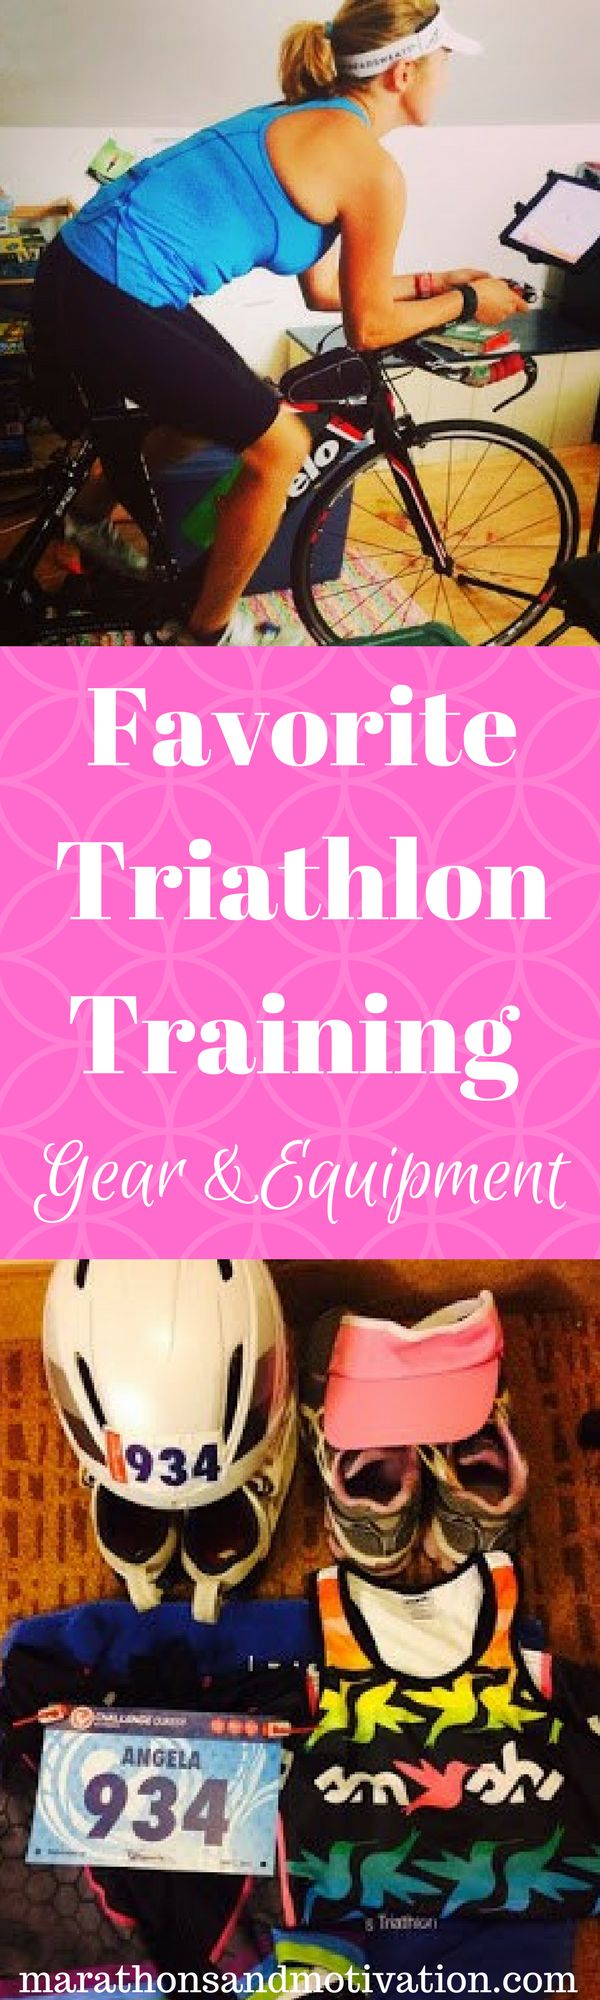 Triathlon Training Gear and Equipment: FAVORITE items for Sprint Triathlons | Ironman Triathlons | Swimming | Cycling | Running